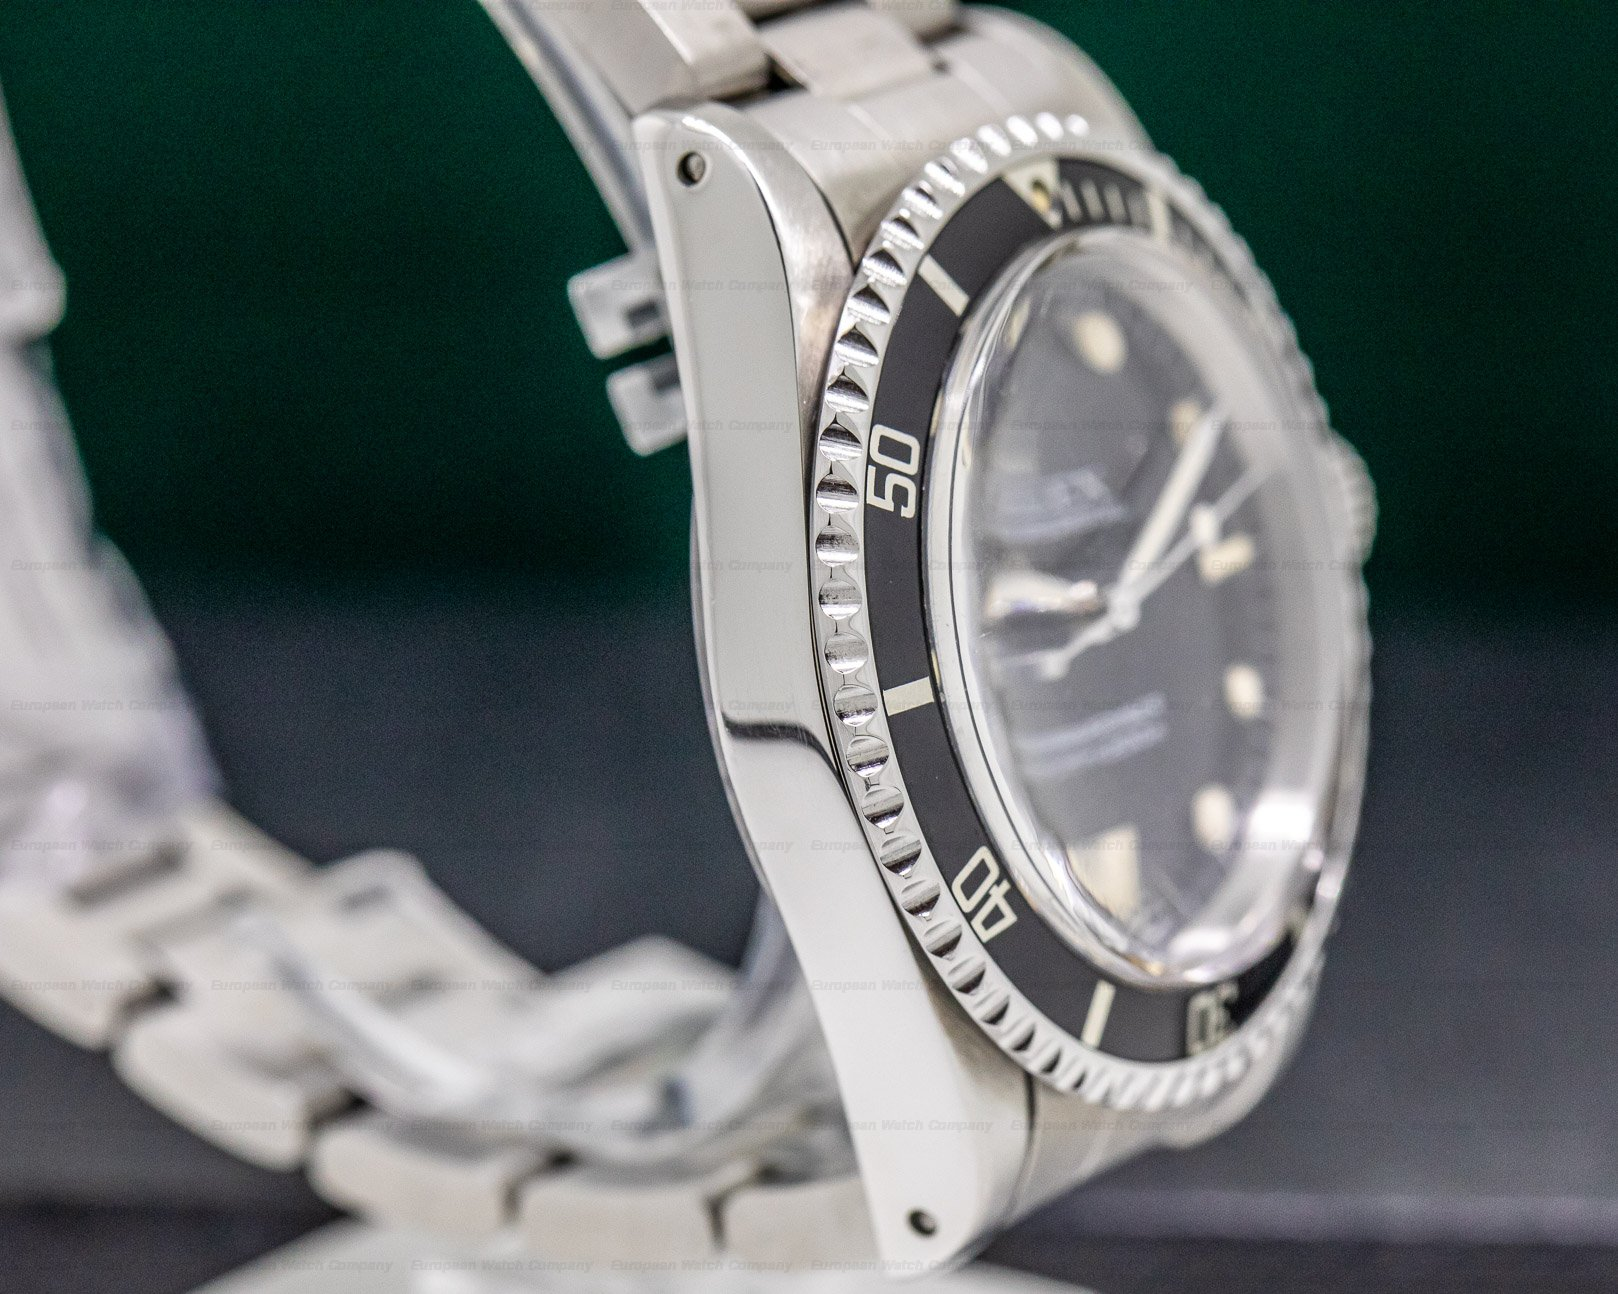 Rolex 5513 Transitional Gloss Dial Submariner c. 1988